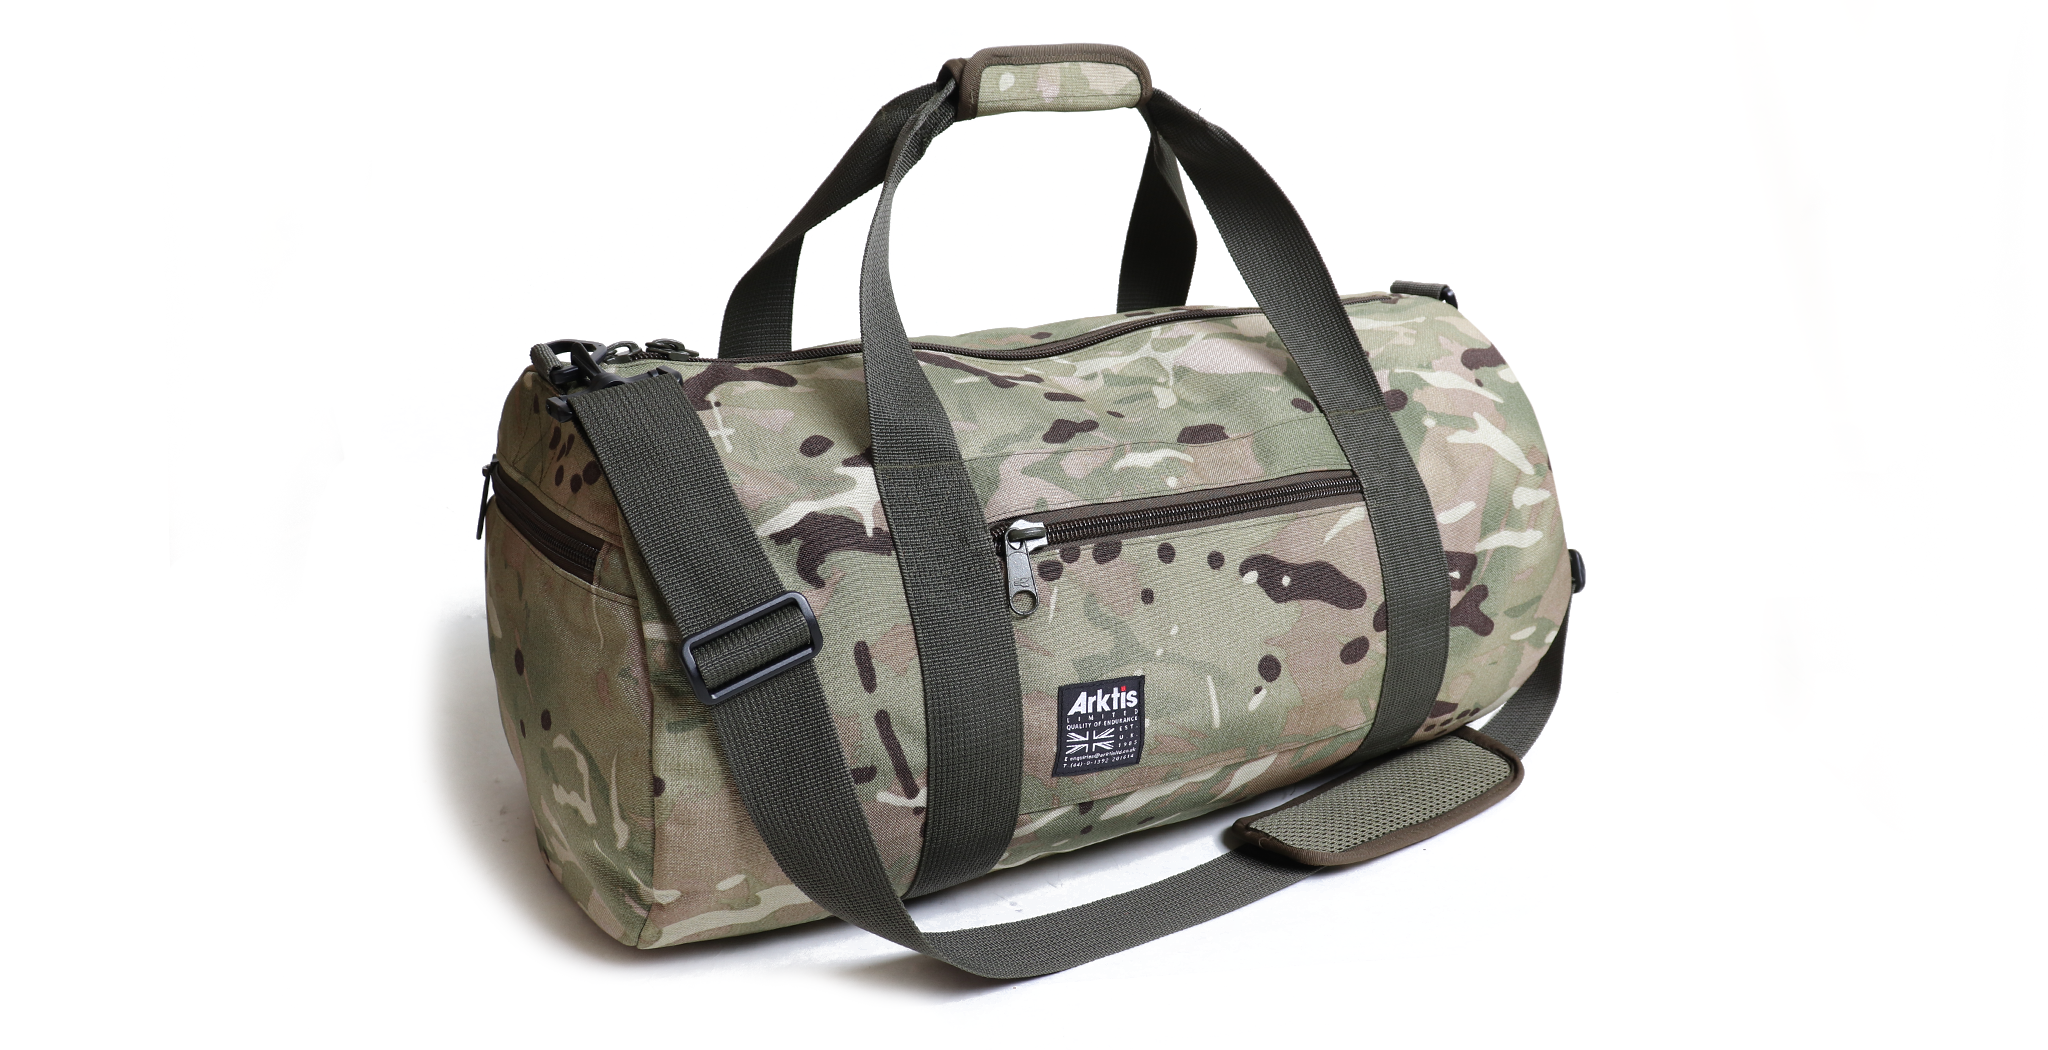 New - T114 45L Barrel Bag